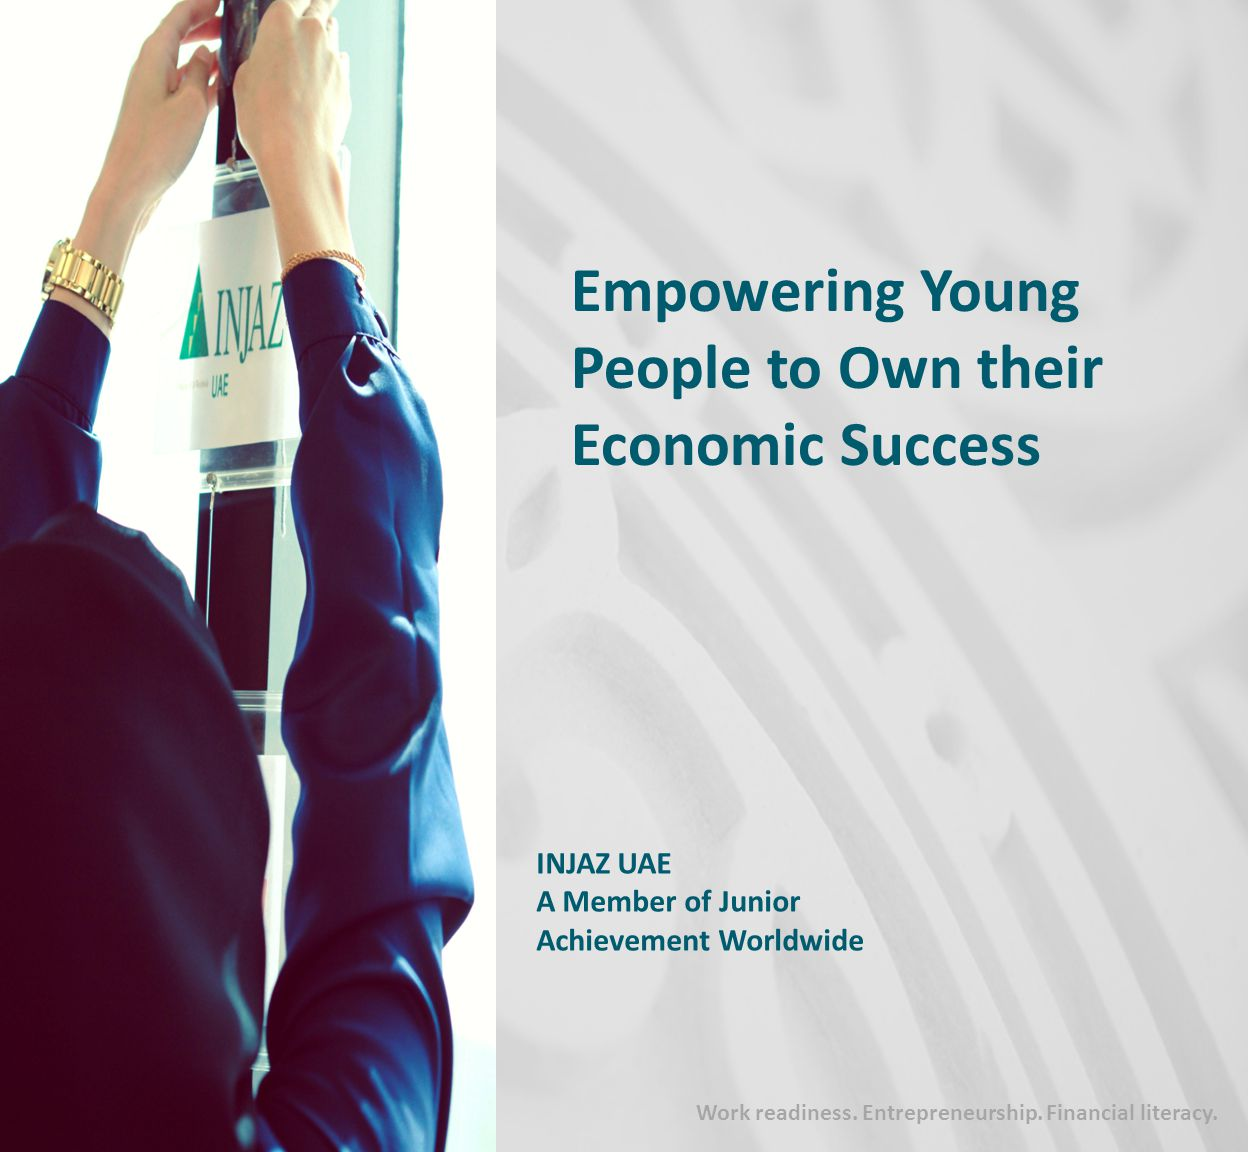 Empowering Young People to Own their Economic Success INJAZ UAE A Member of Junior Achievement Worldwide Work readiness.